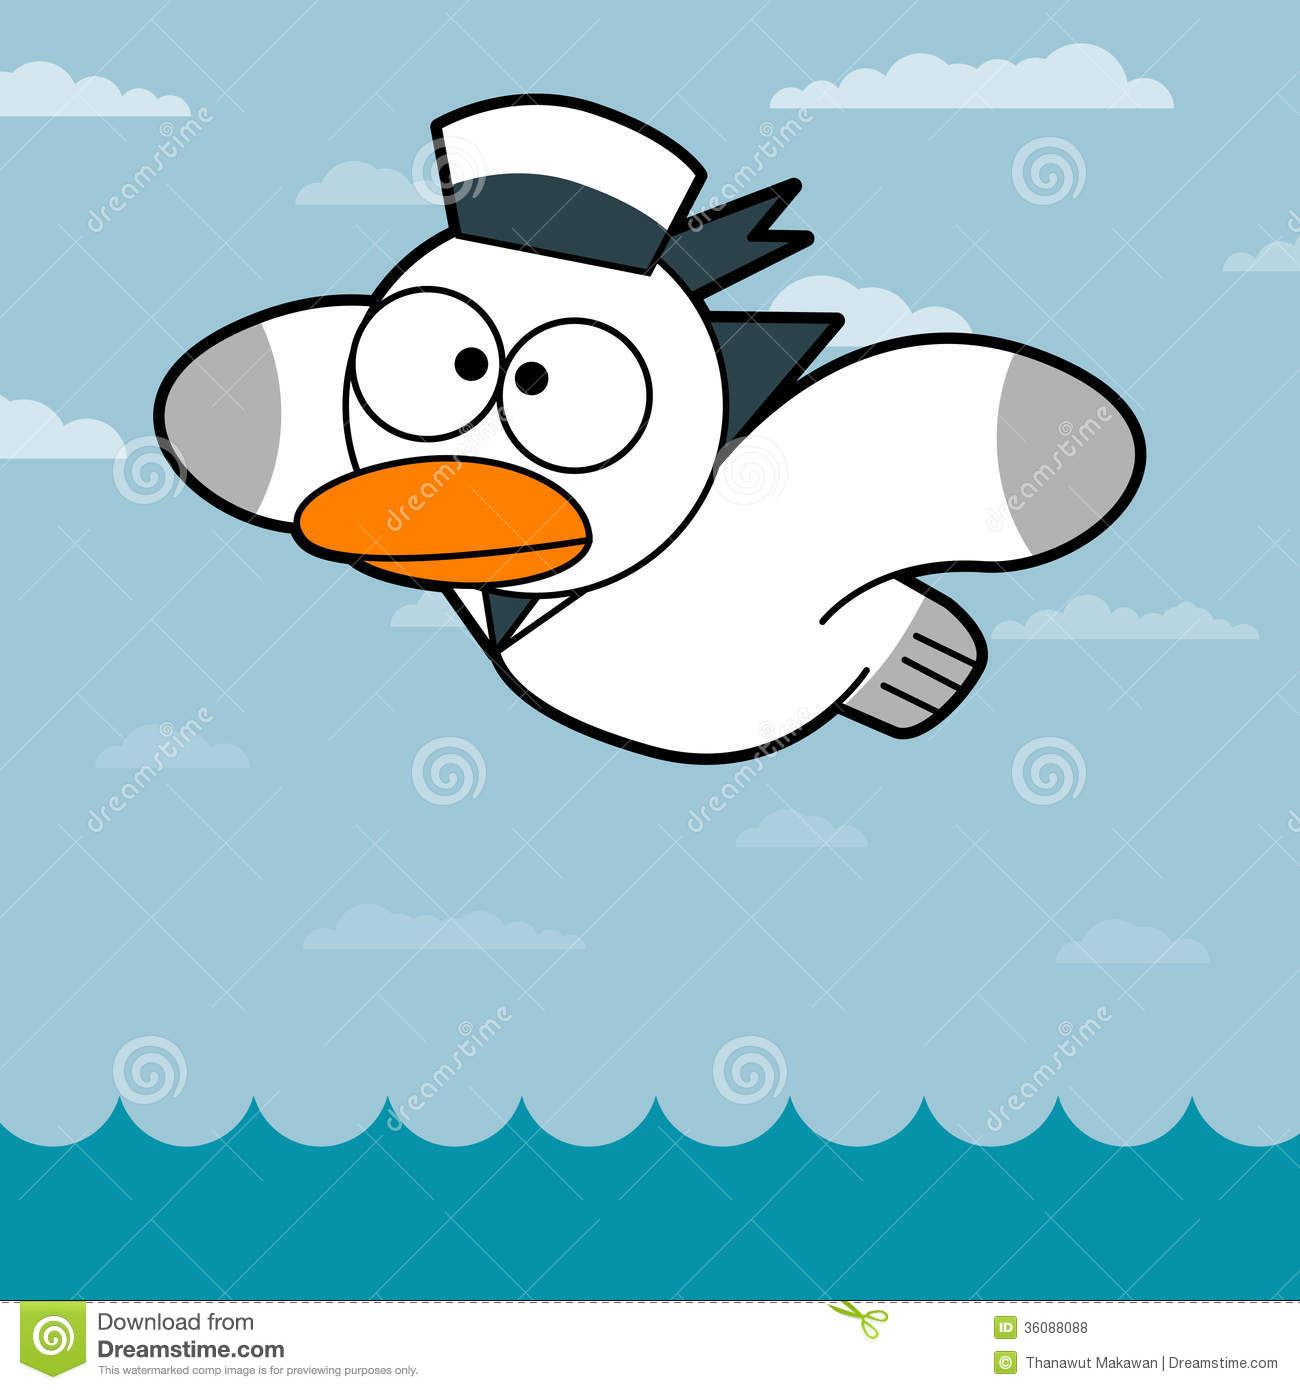 Cartoon Seagull cartoon seagull royalty free stock photos - image ...